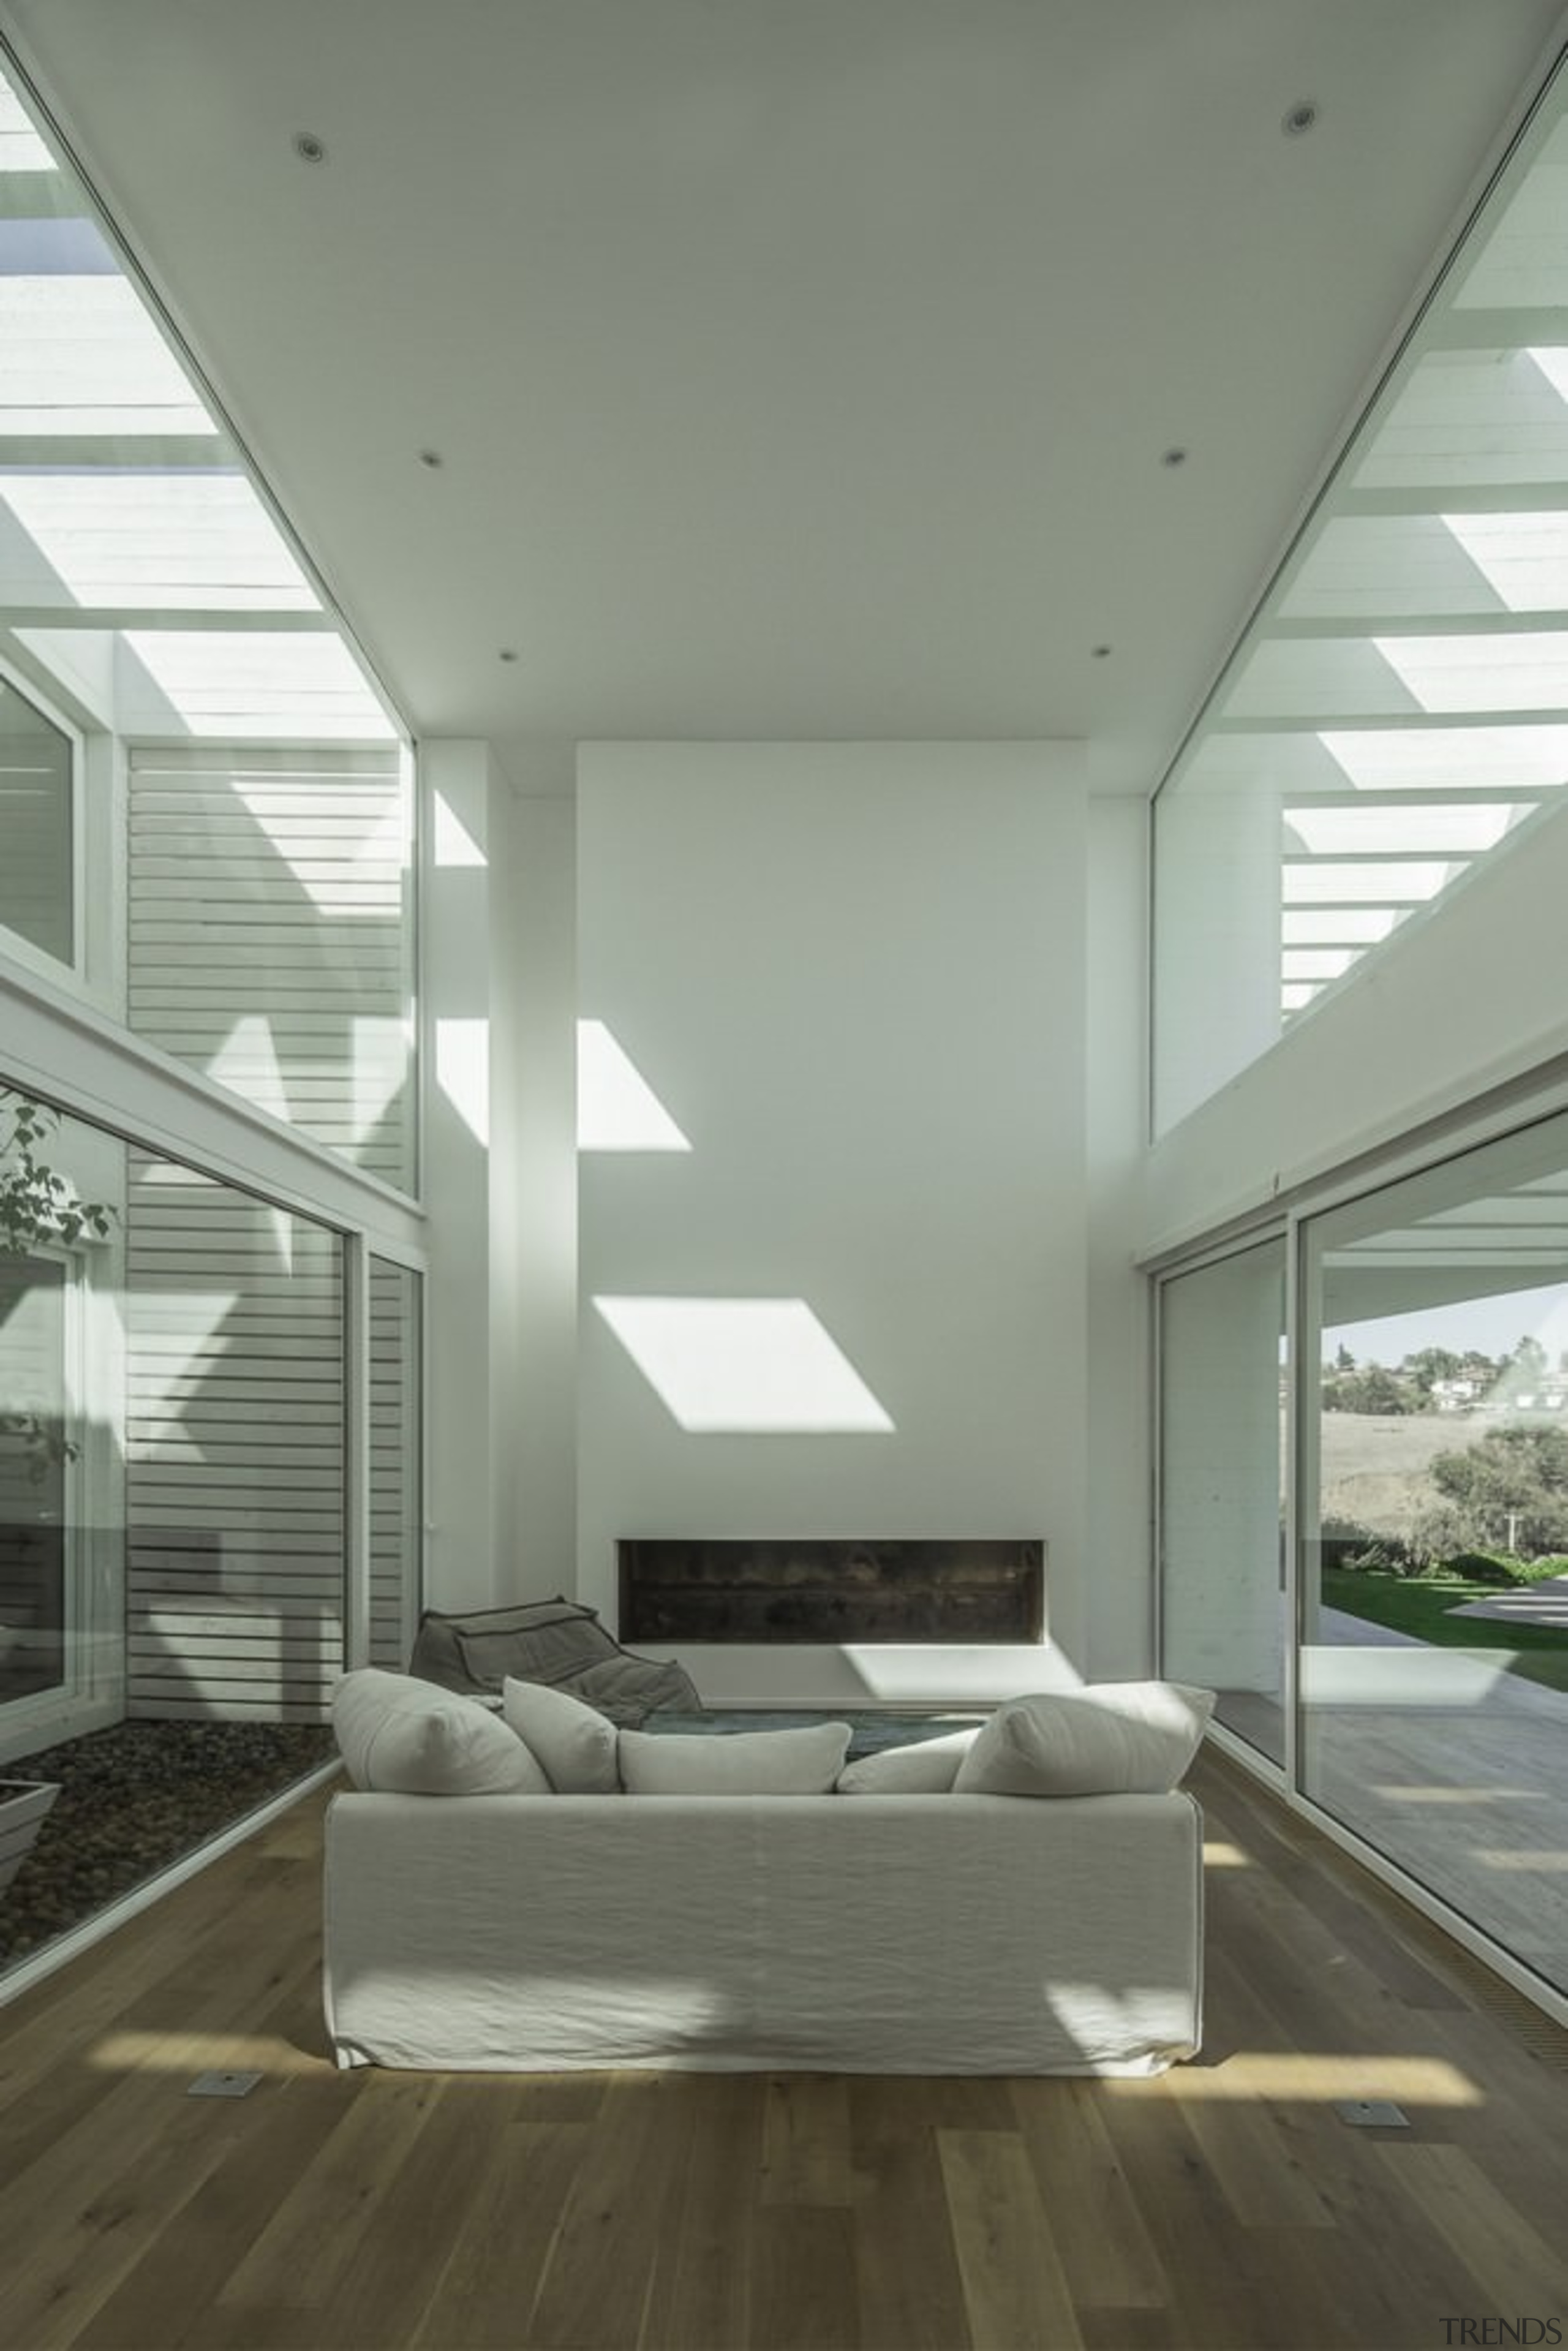 The architect made every attempt to maximise natural architecture, ceiling, condominium, daylighting, daytime, estate, floor, house, interior design, living room, window, gray